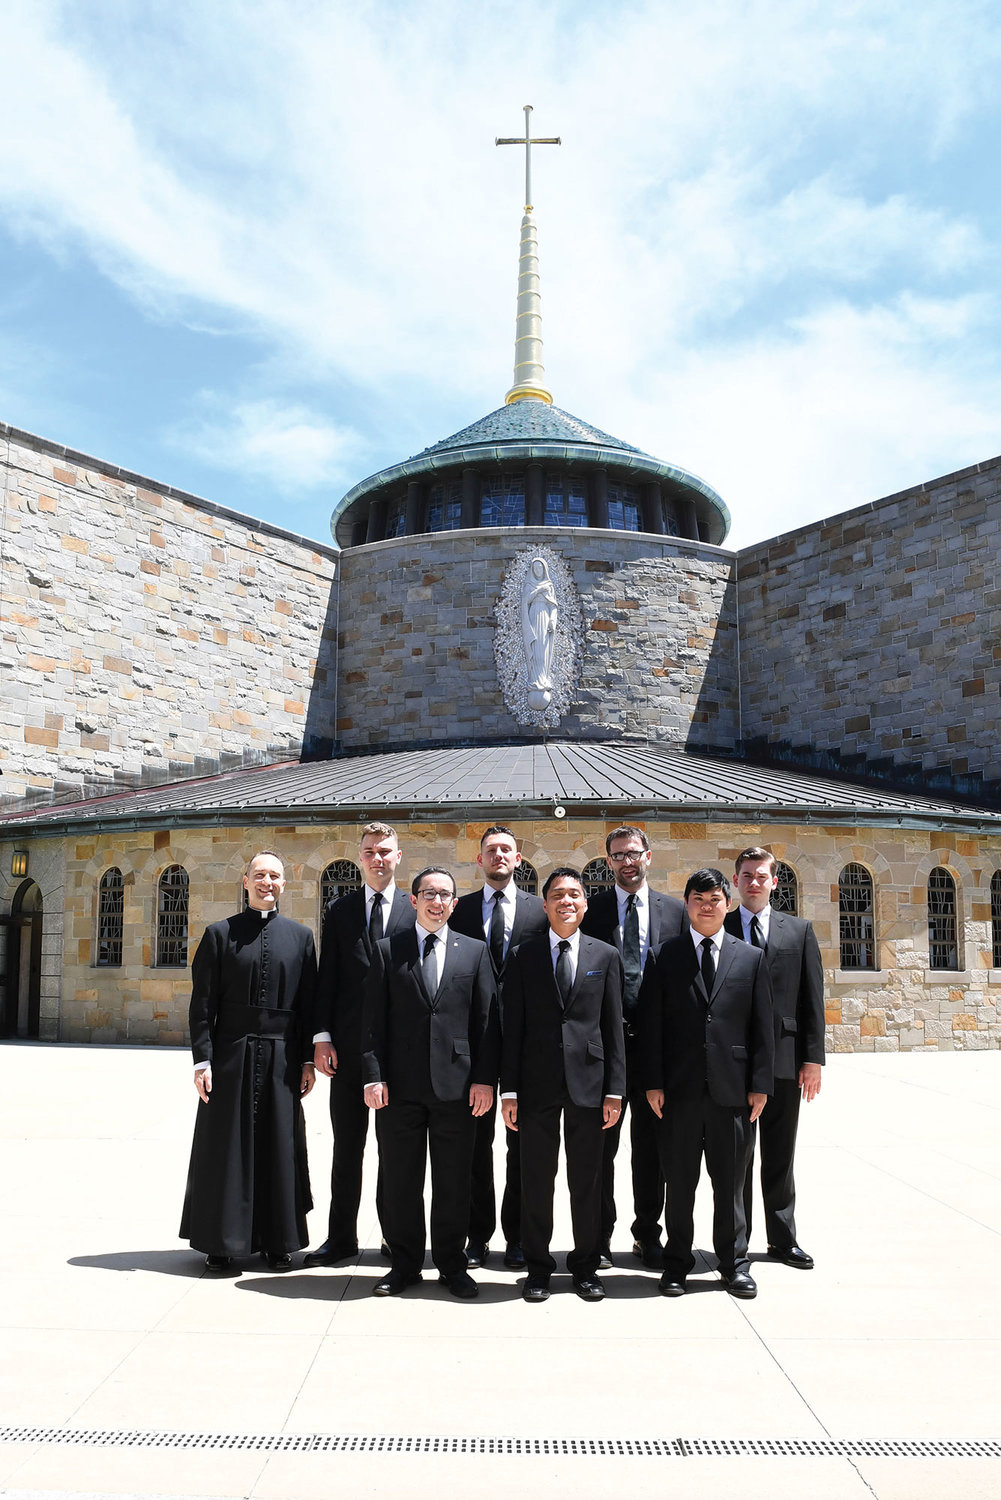 Senior seminarians of Cathedral Seminary House of Formation in Douglaston, Queens, who are members of the Class of 2019 for the Archdiocese of New York, convene for a photo, on campus on their convocation day, May 18. Pictured with the rector, Father George Sears, at far left, they are: Viktor Gjergji, David L. Birkdale, Vasel L. Gjonlekaj, Jay A. Sulit, Jozef Ukaj, William C. Mendoza and Charles J. Cothren.